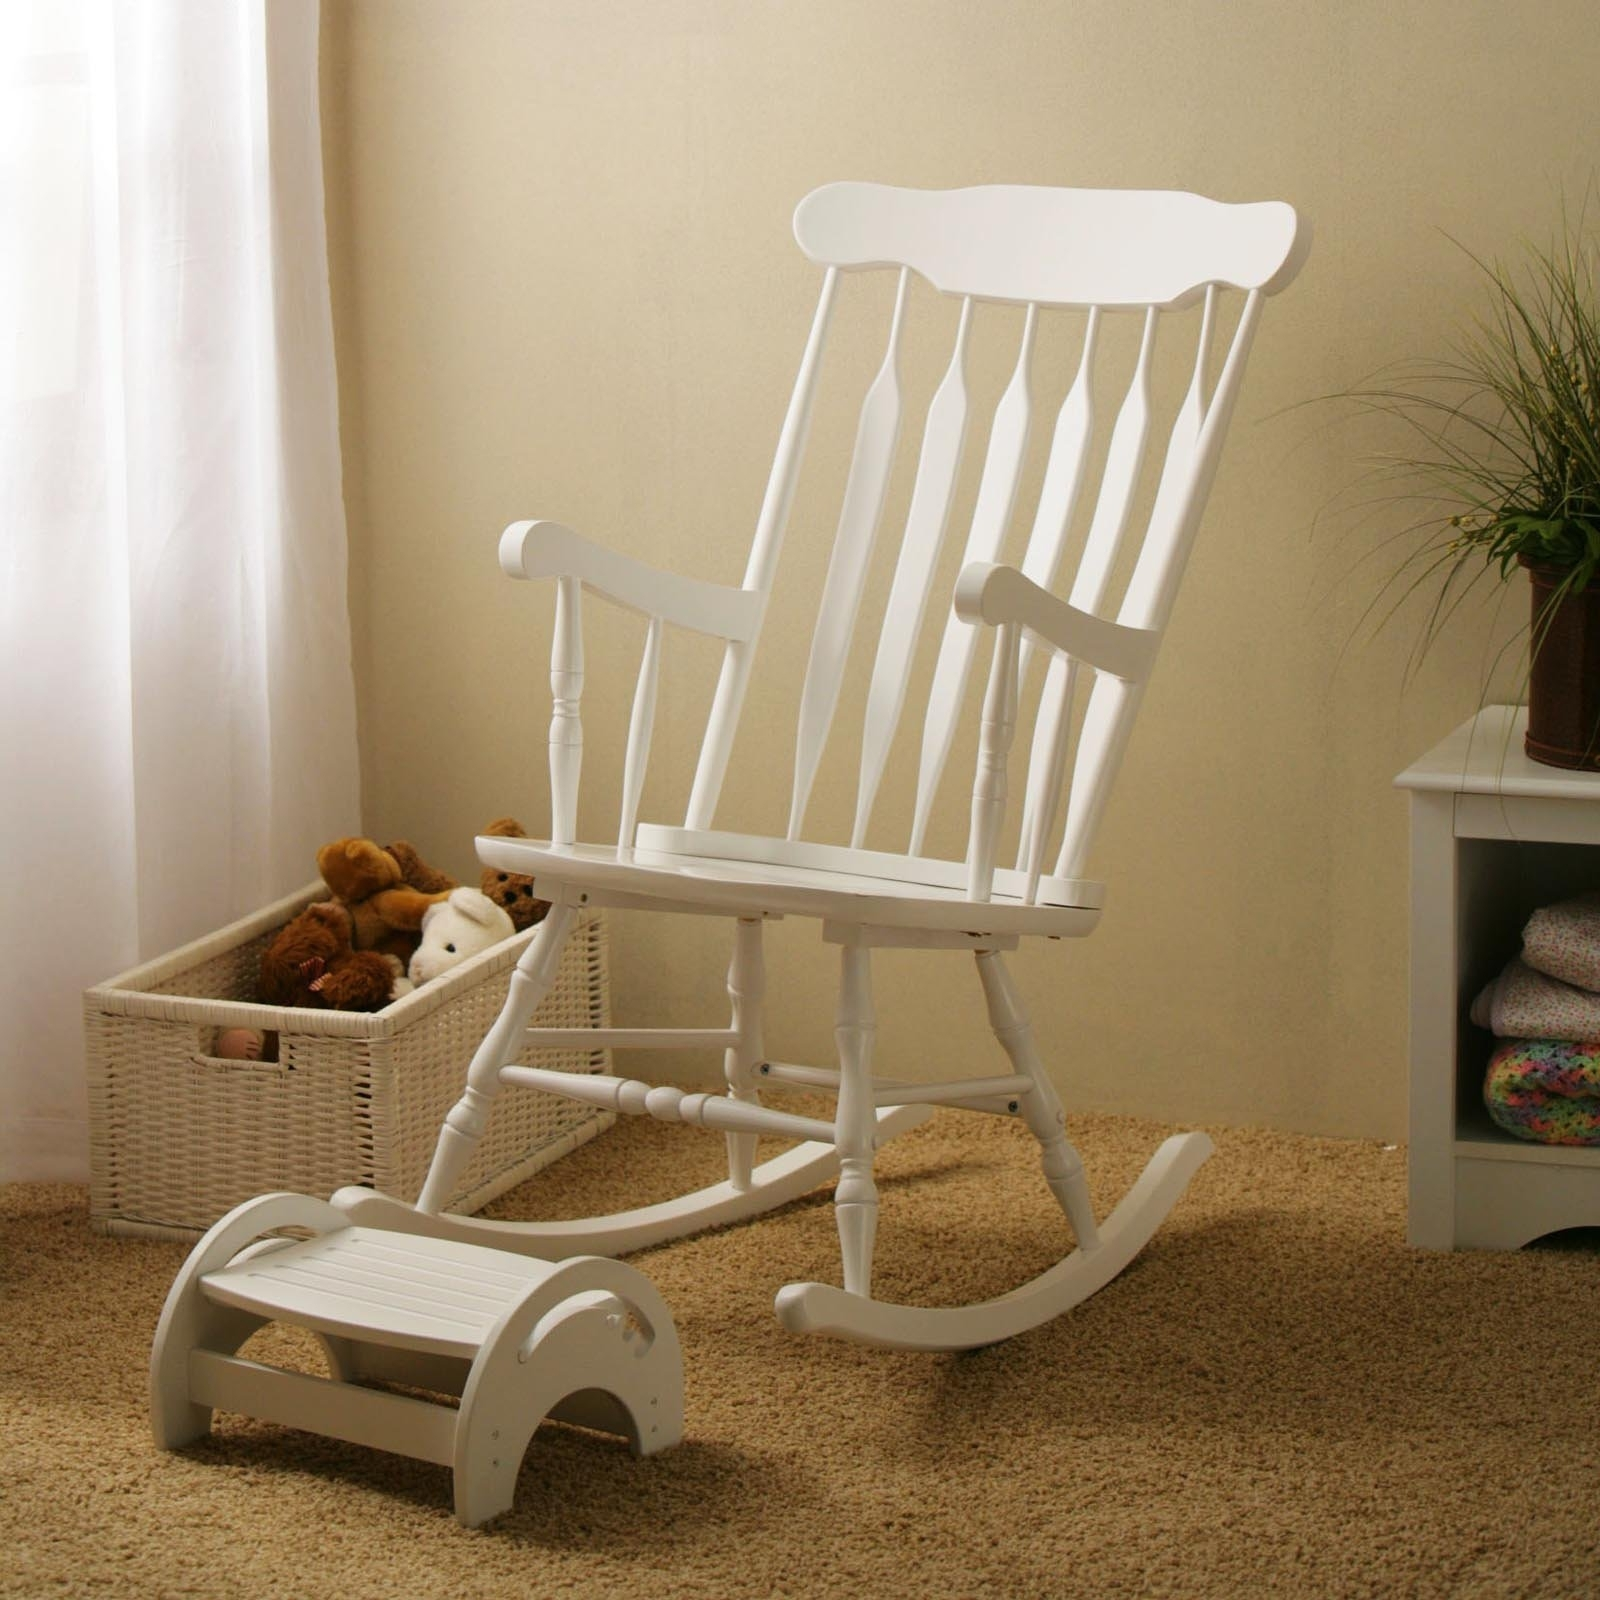 Rocking Chair With Footrest – Kevinjohnsonformayor Intended For Most Current Rocking Chairs With Footrest (View 7 of 20)